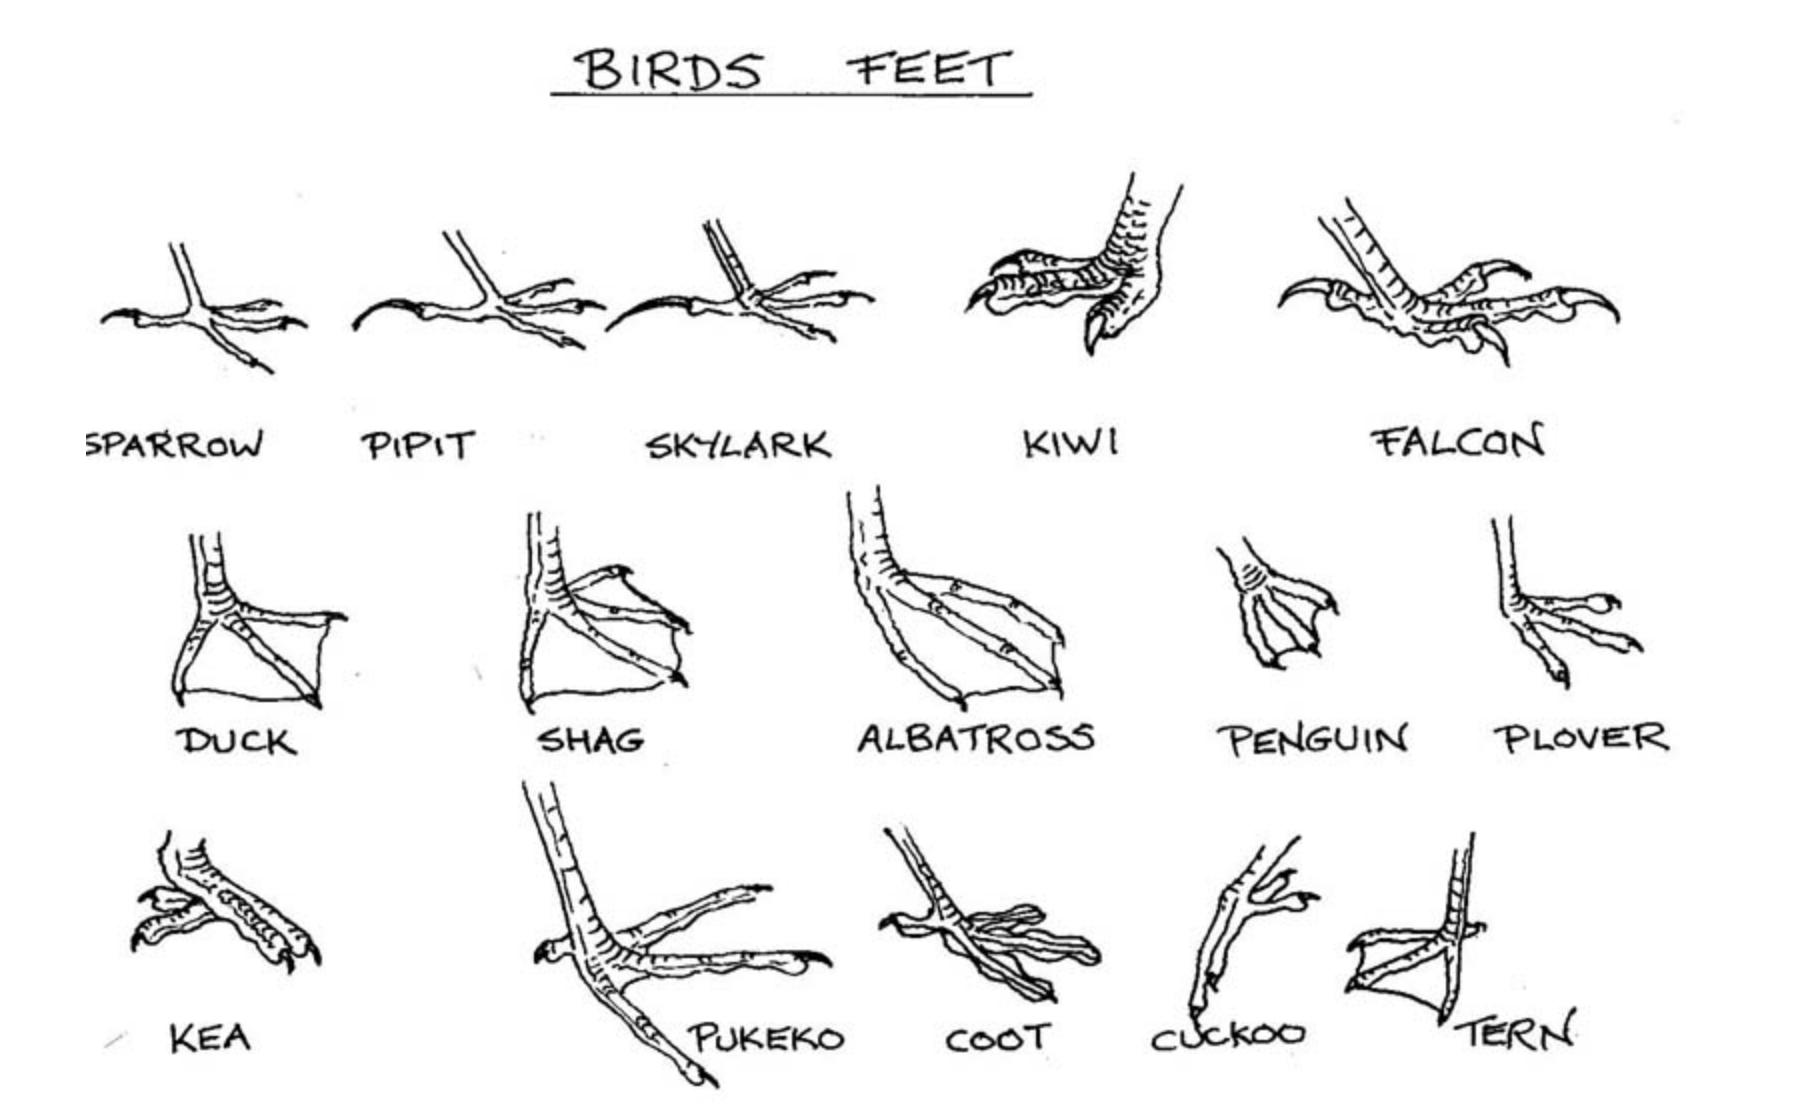 There Is Also Information About The Birds In The Pictures